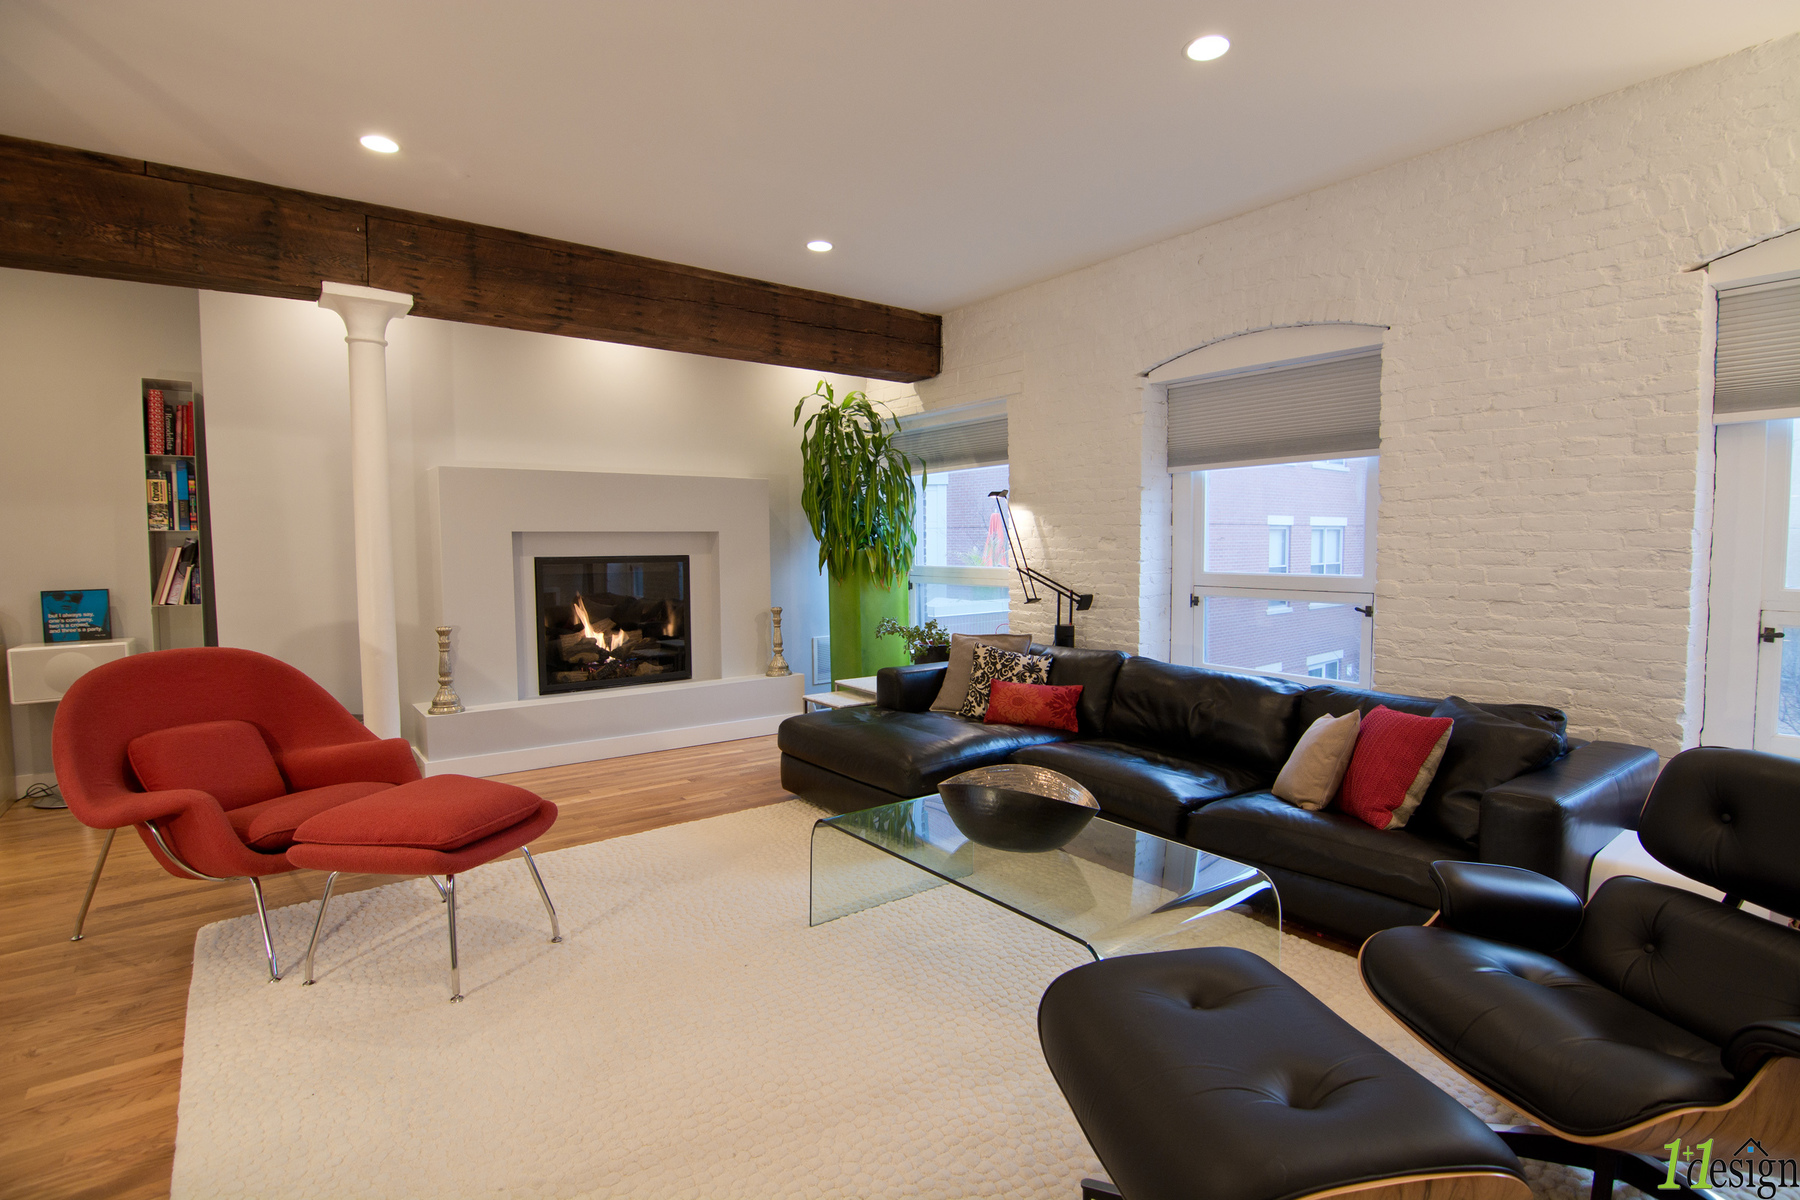 bOSTON LOFT living room & bOSTON LOFT living room | A Hingham based Residential Commercial ...